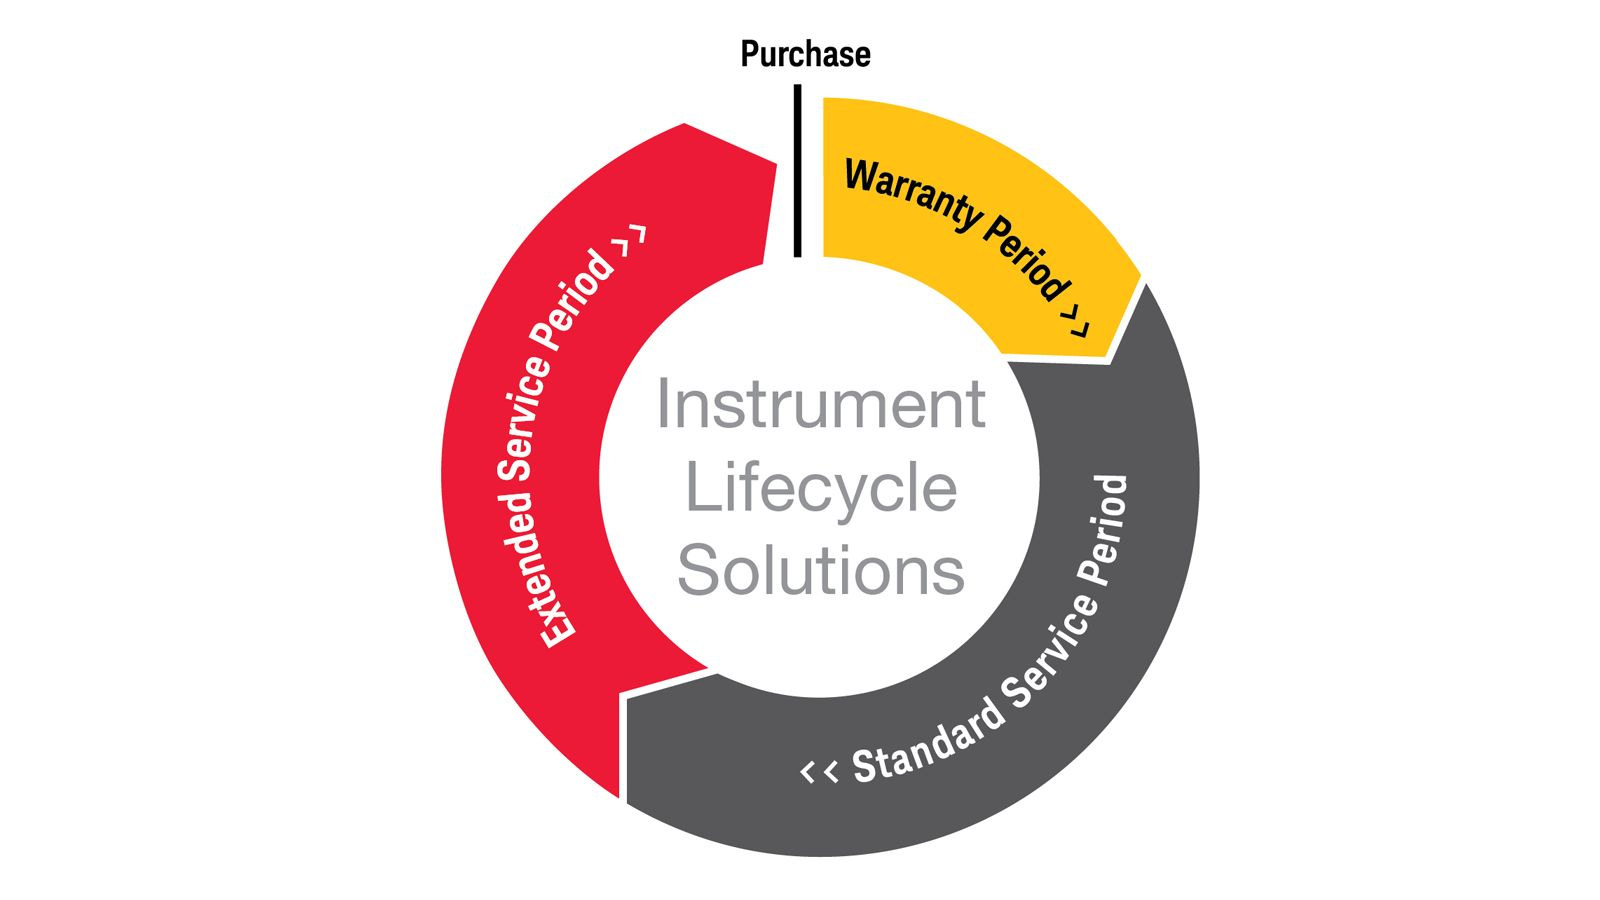 Instrument Lifecycle Solutions for Calibration and Repair